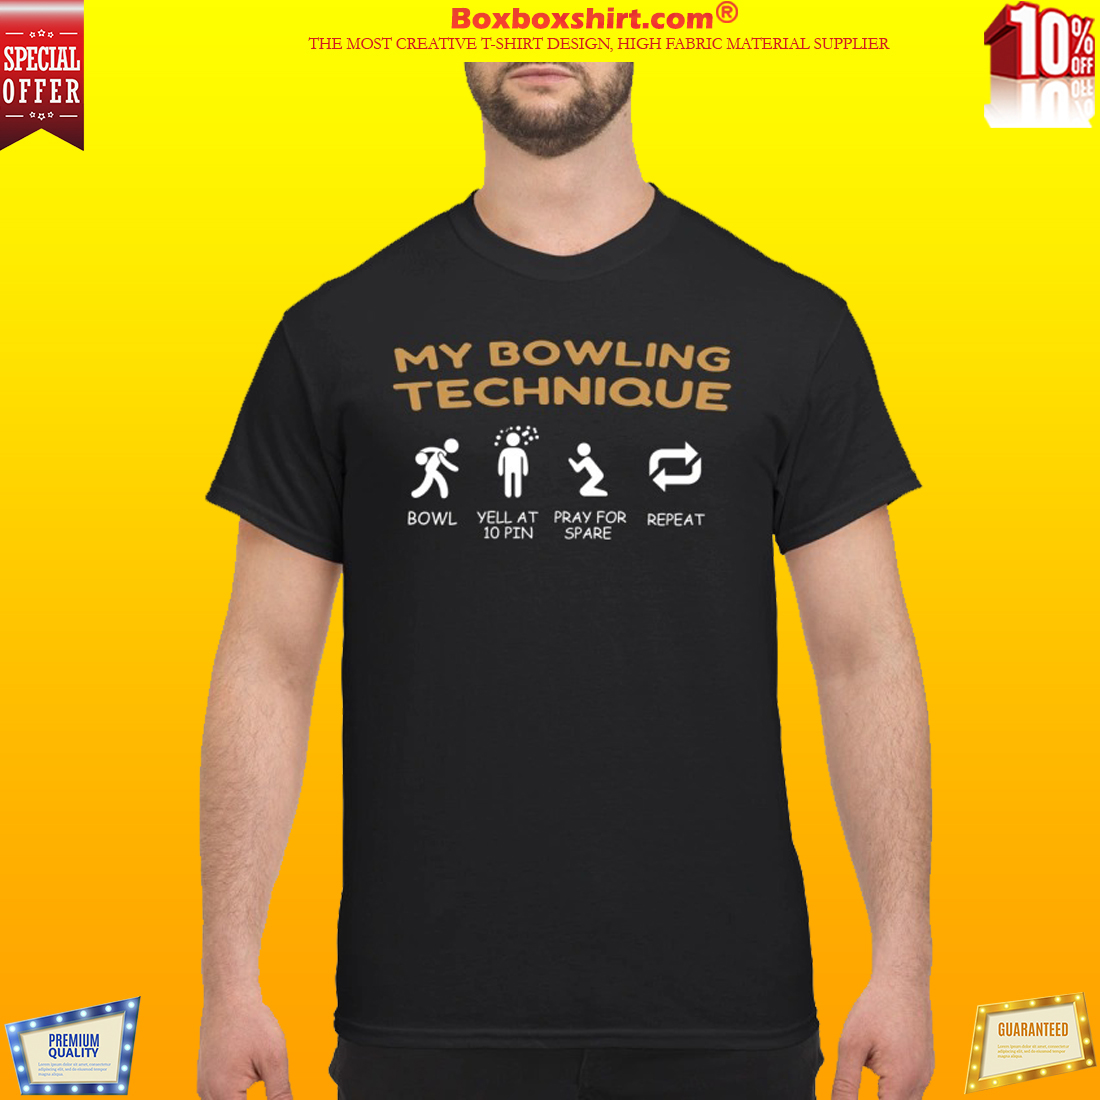 My bowling technique bowl yell at 10 pin classic shirt